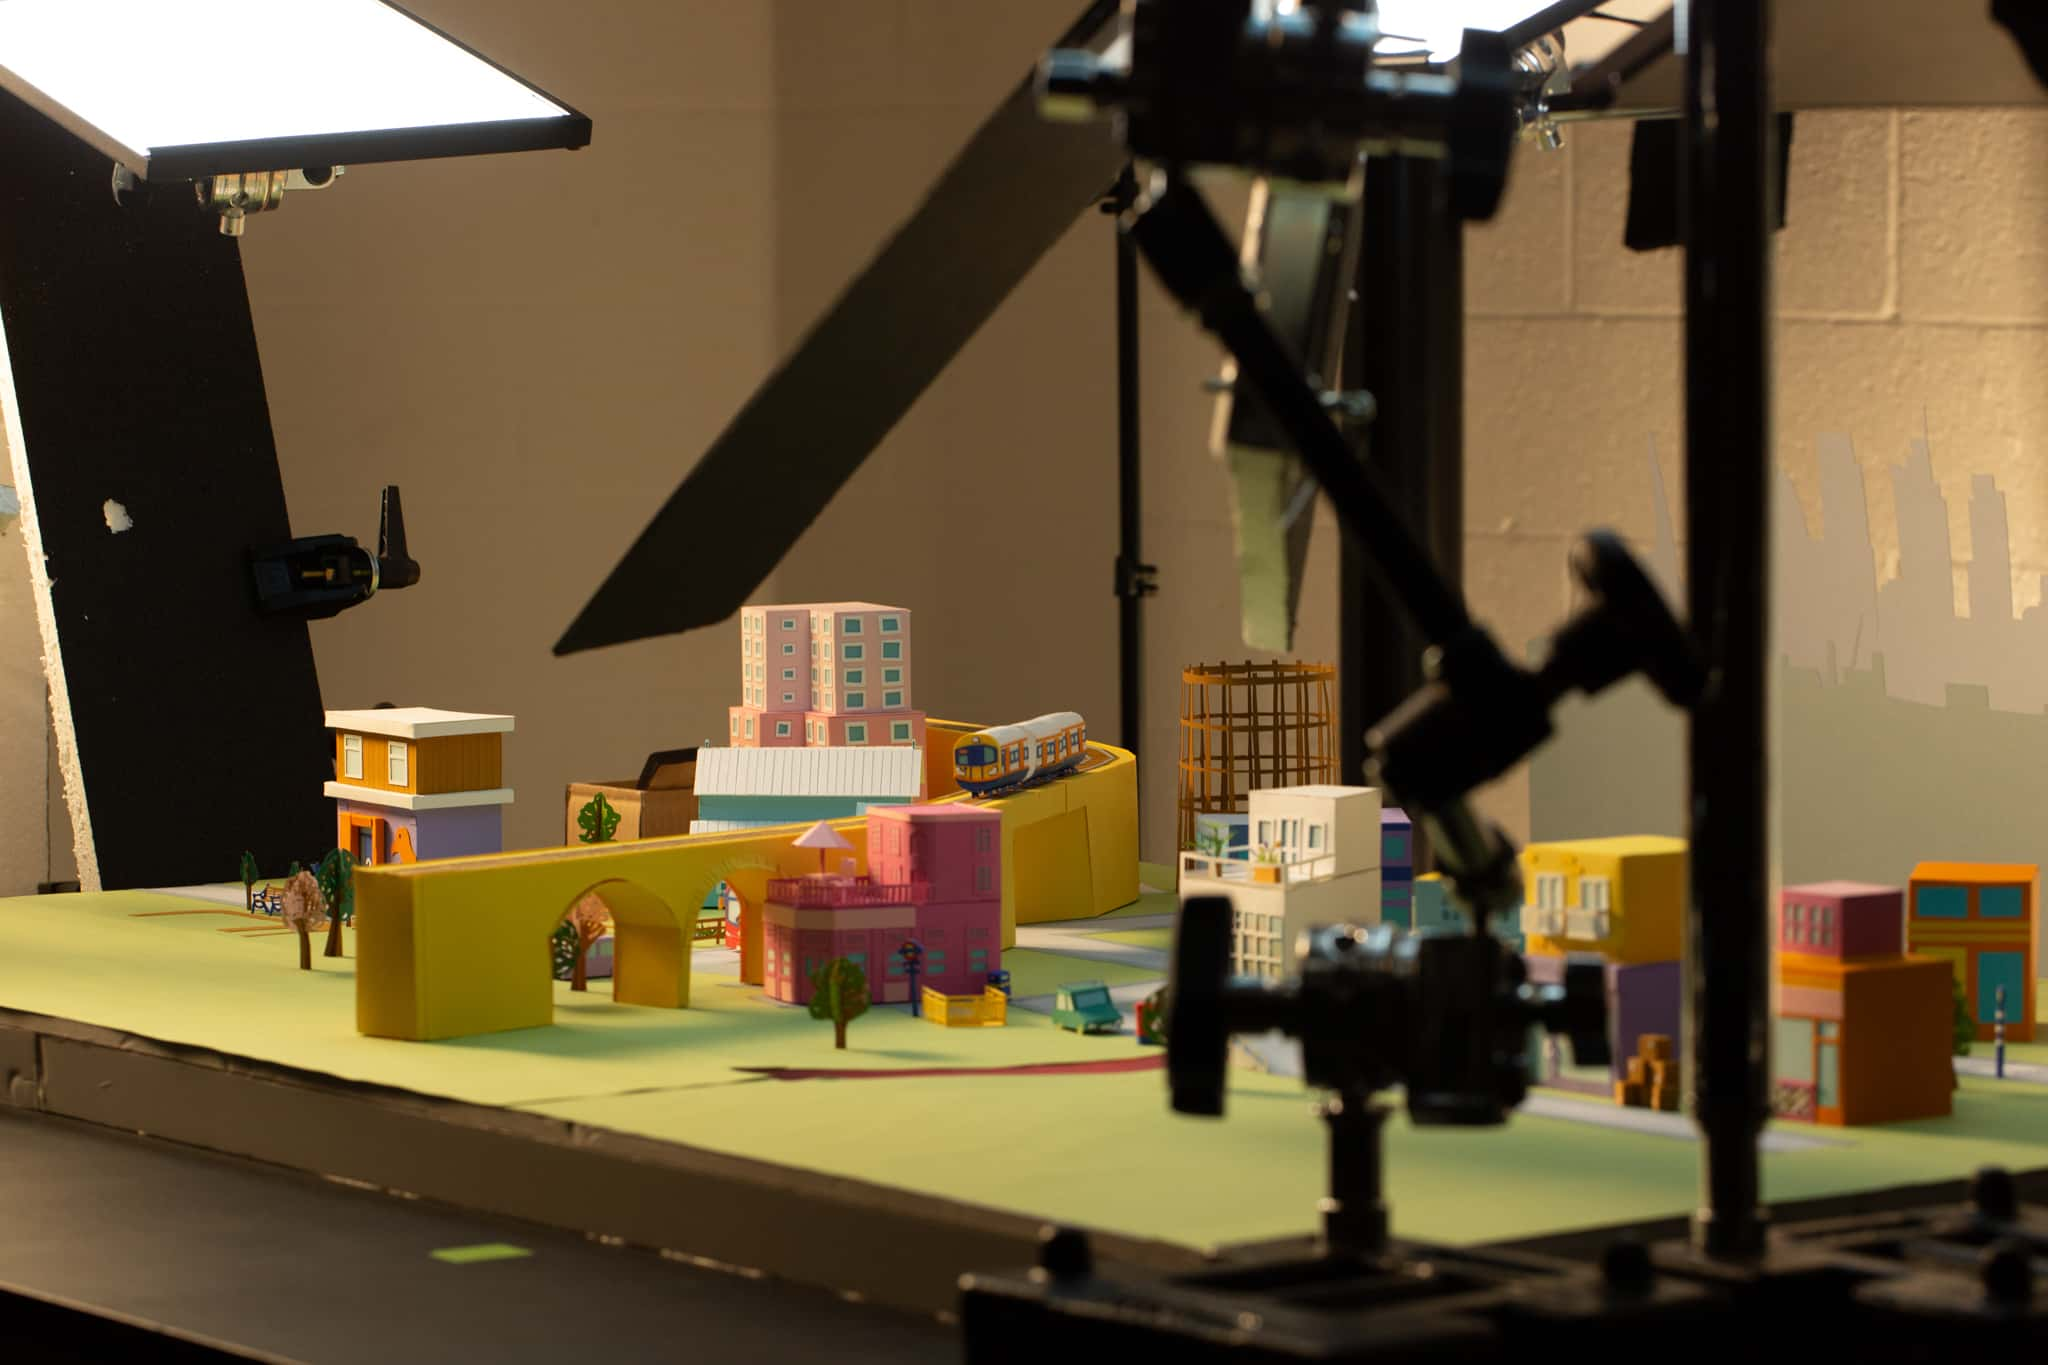 We have moved animation set